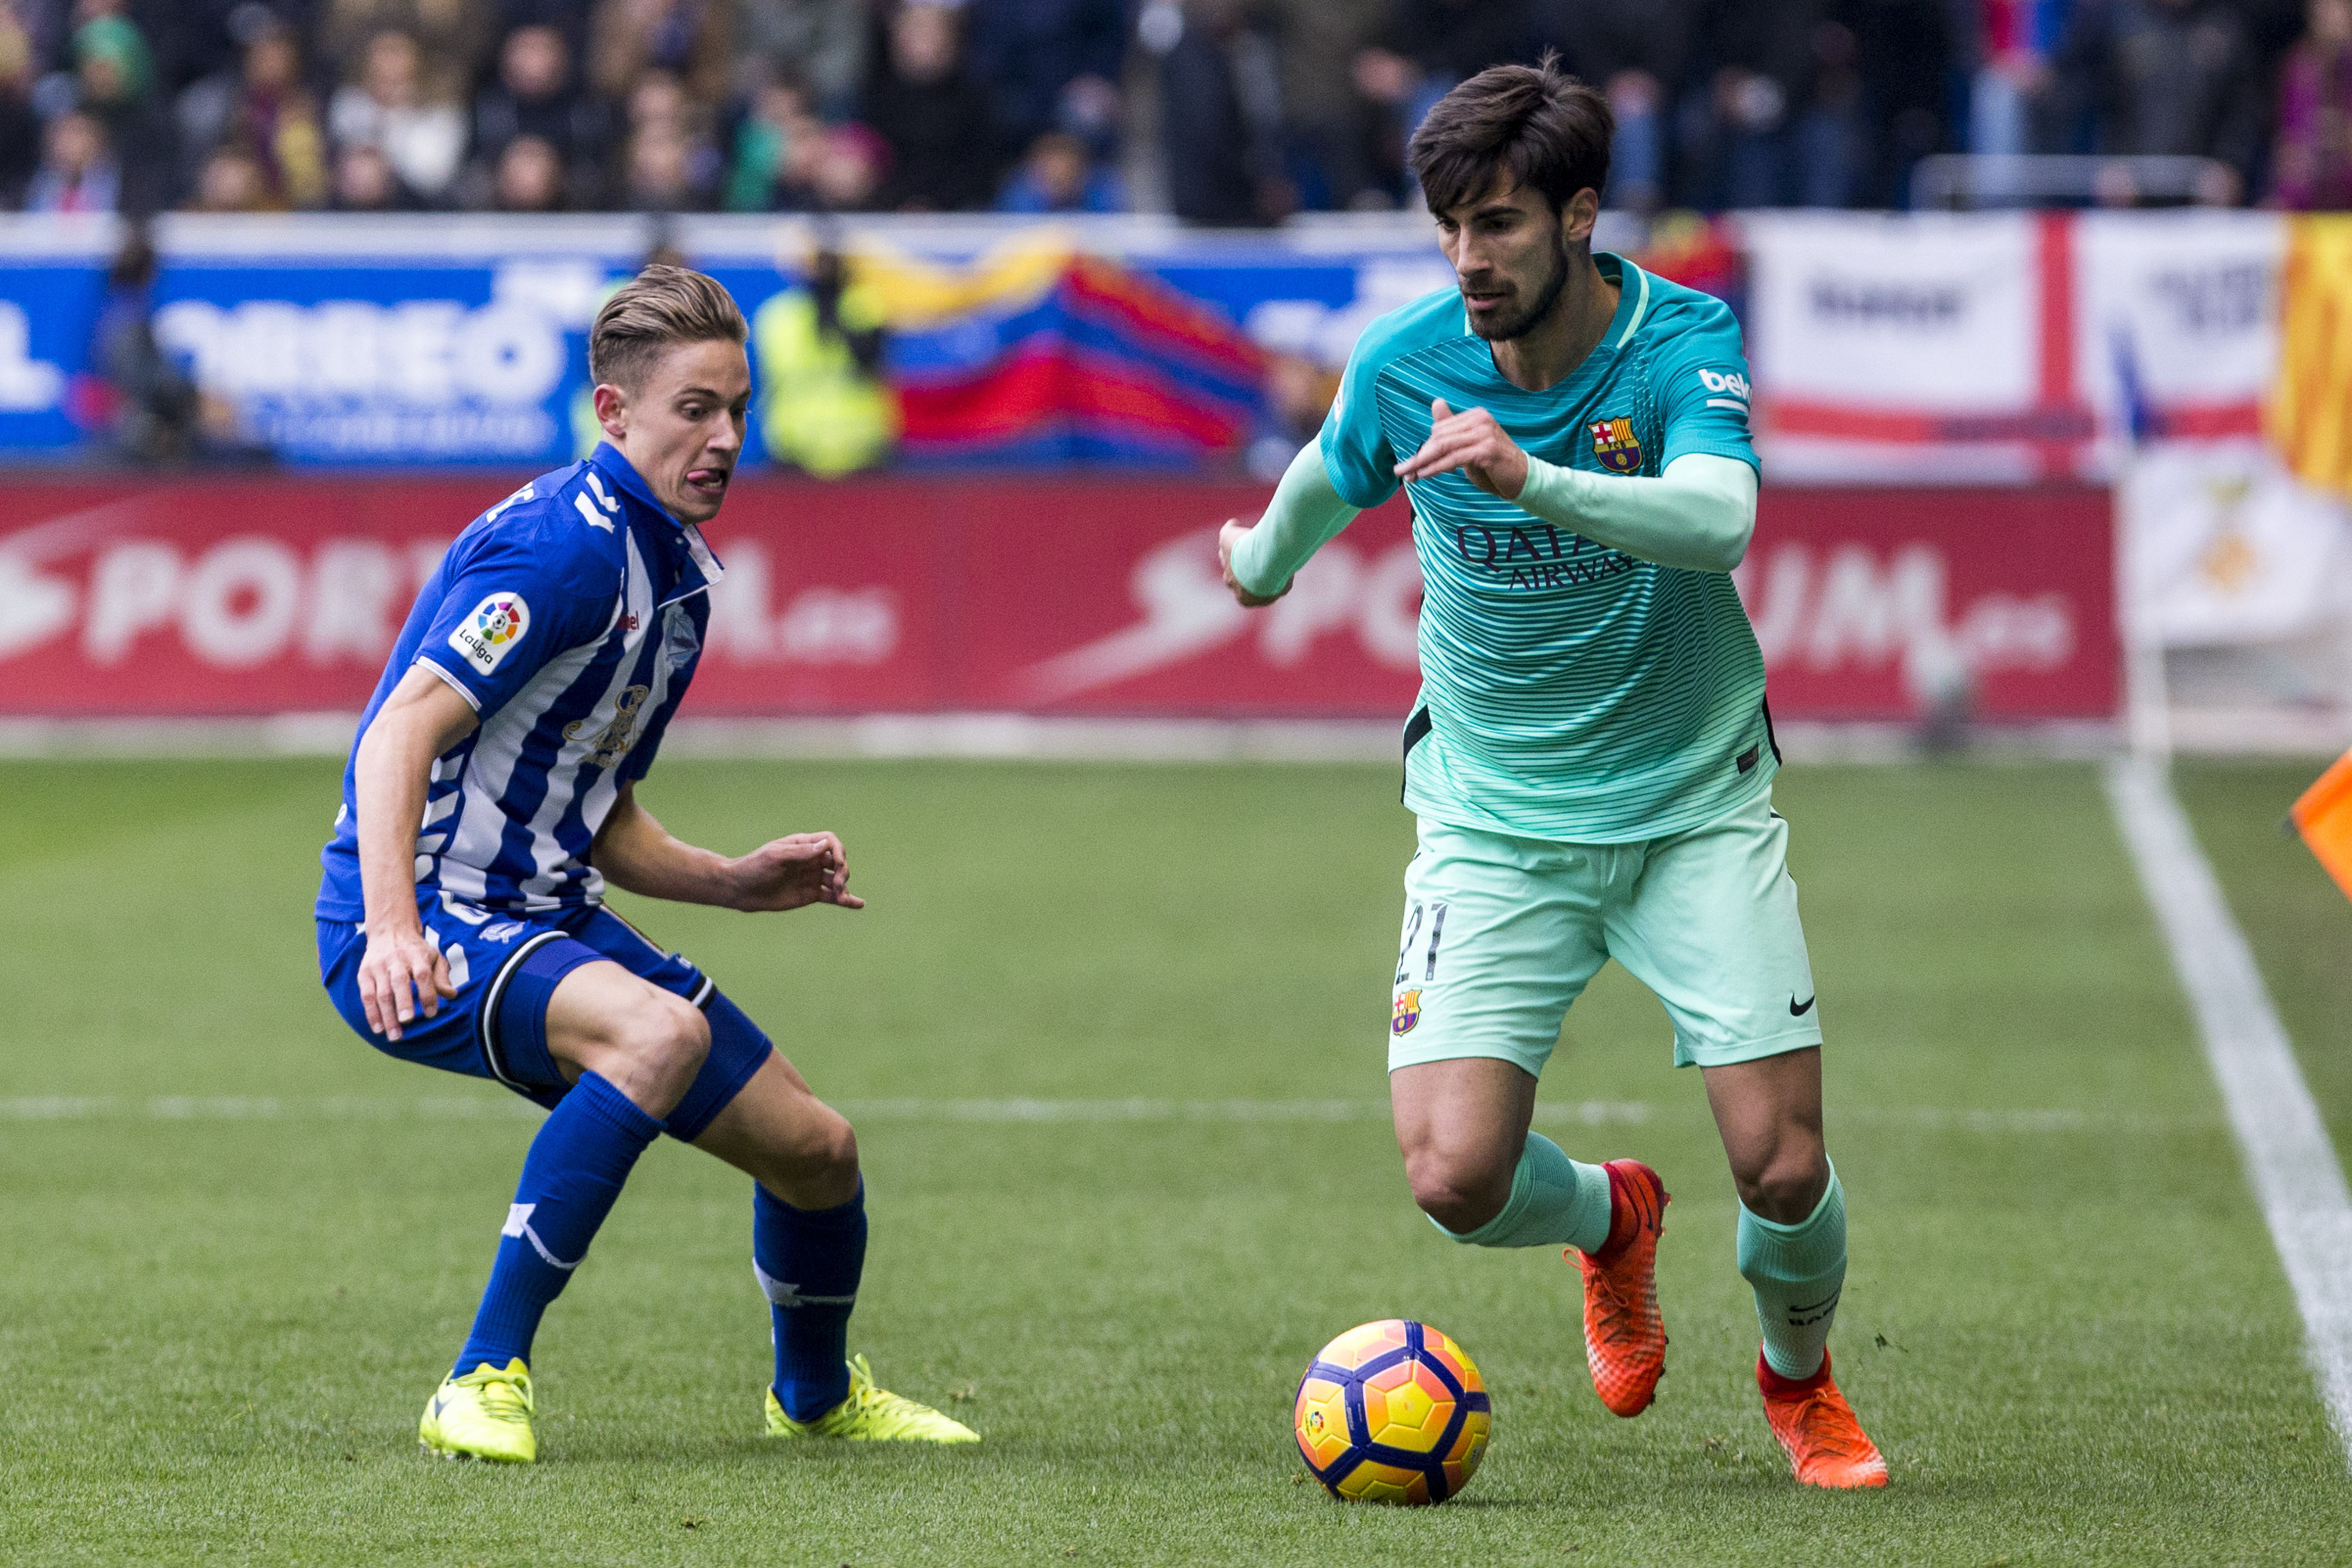 Barcelona reject offer for Andre Gomes?